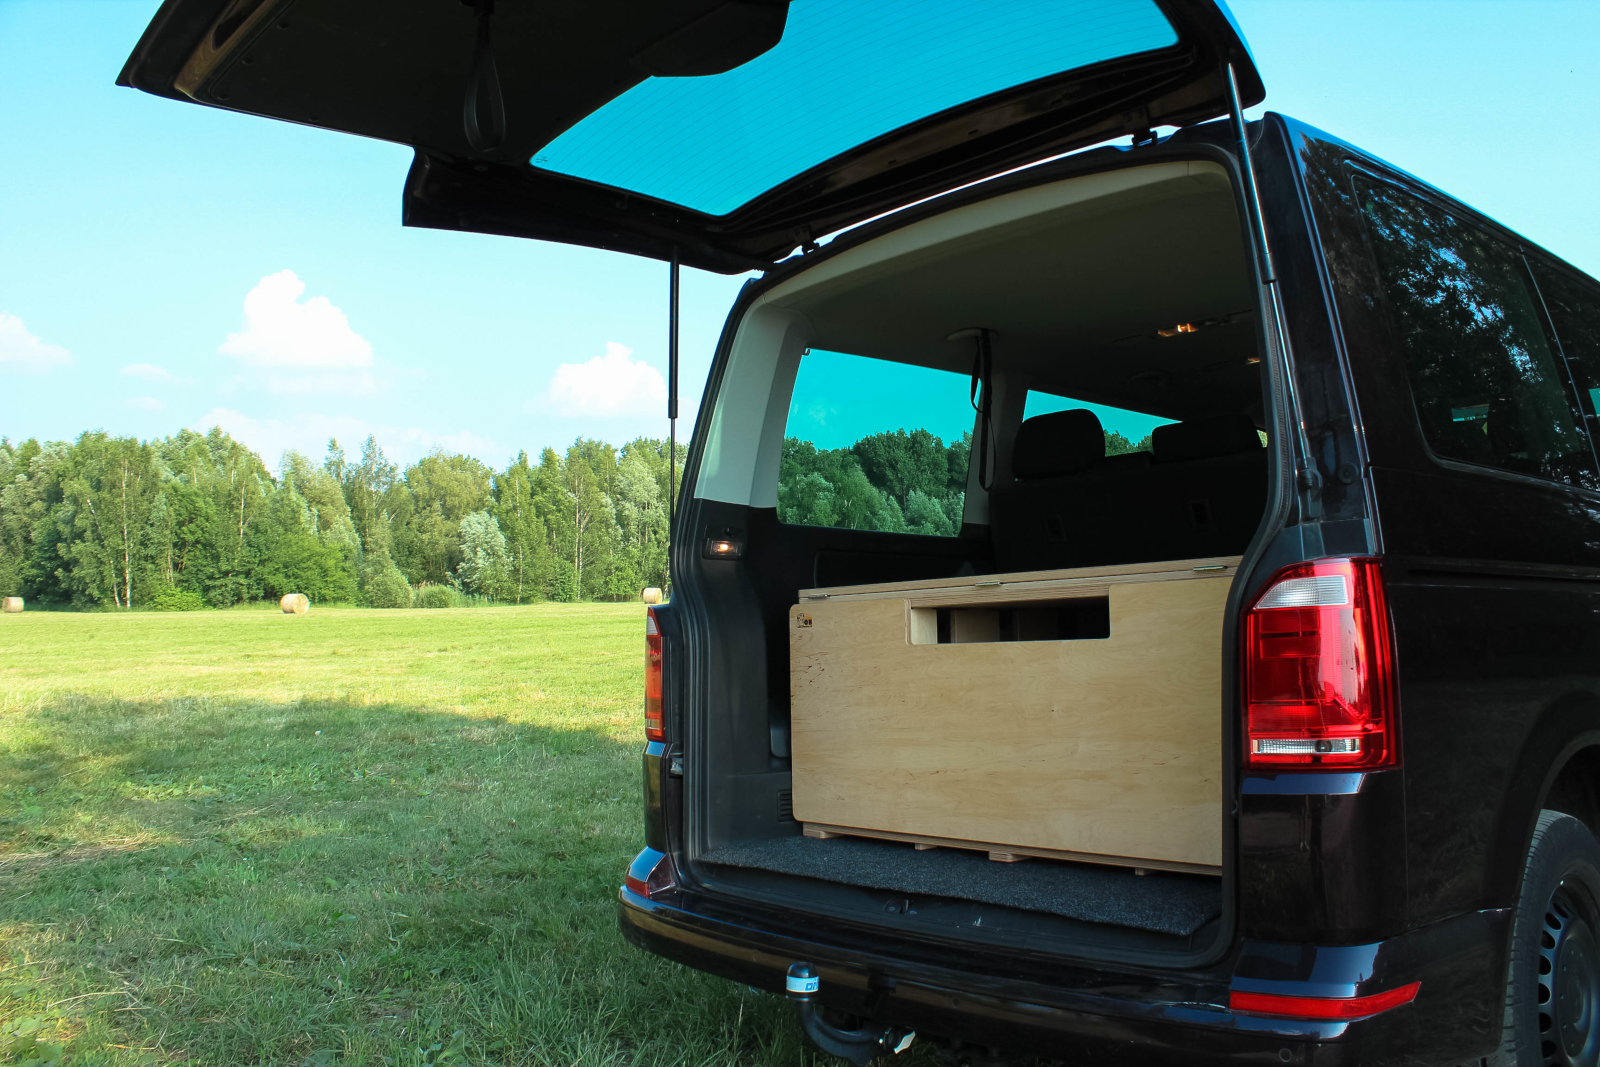 campingbox biberbox das kleine puzzle im vw bus matsch. Black Bedroom Furniture Sets. Home Design Ideas